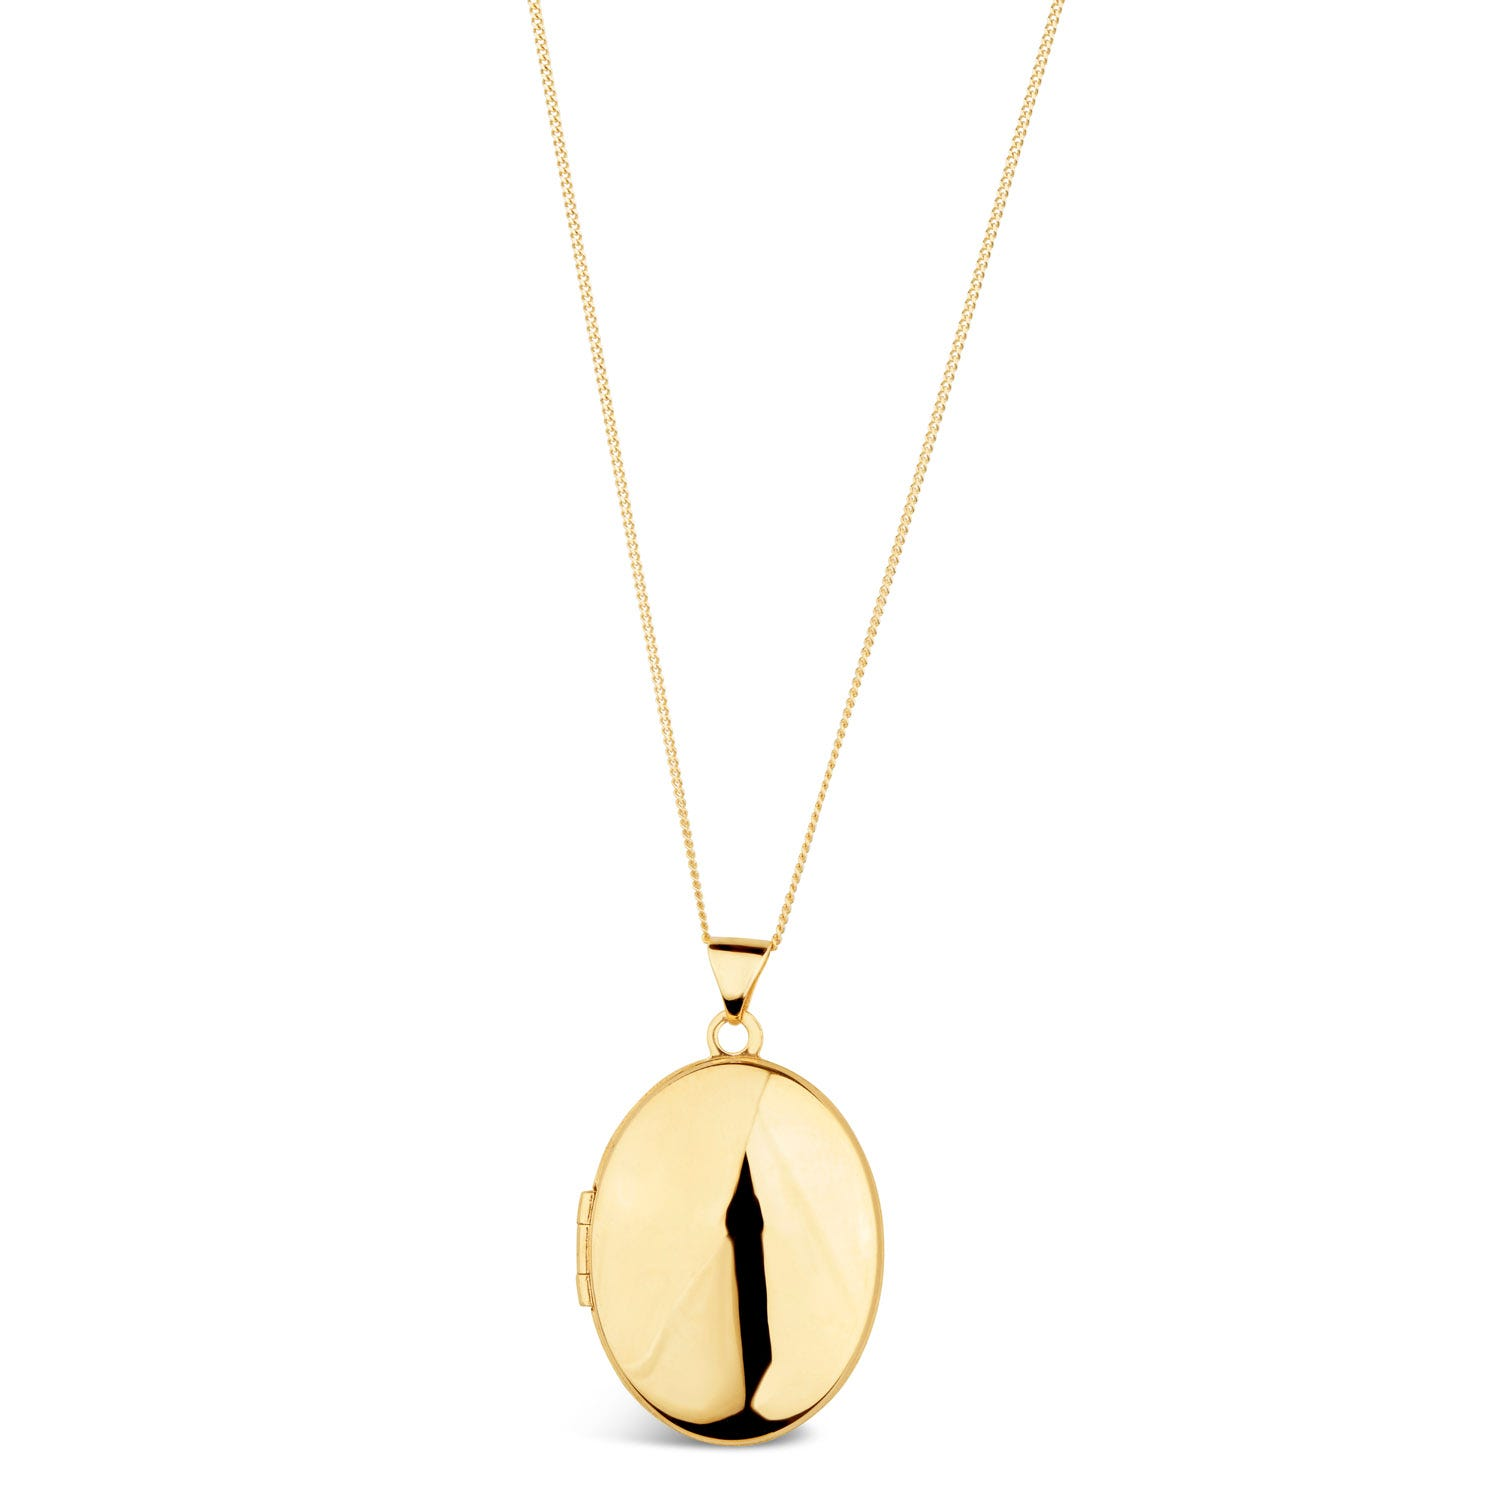 9ct Yellow Gold Oval Locket Pendant